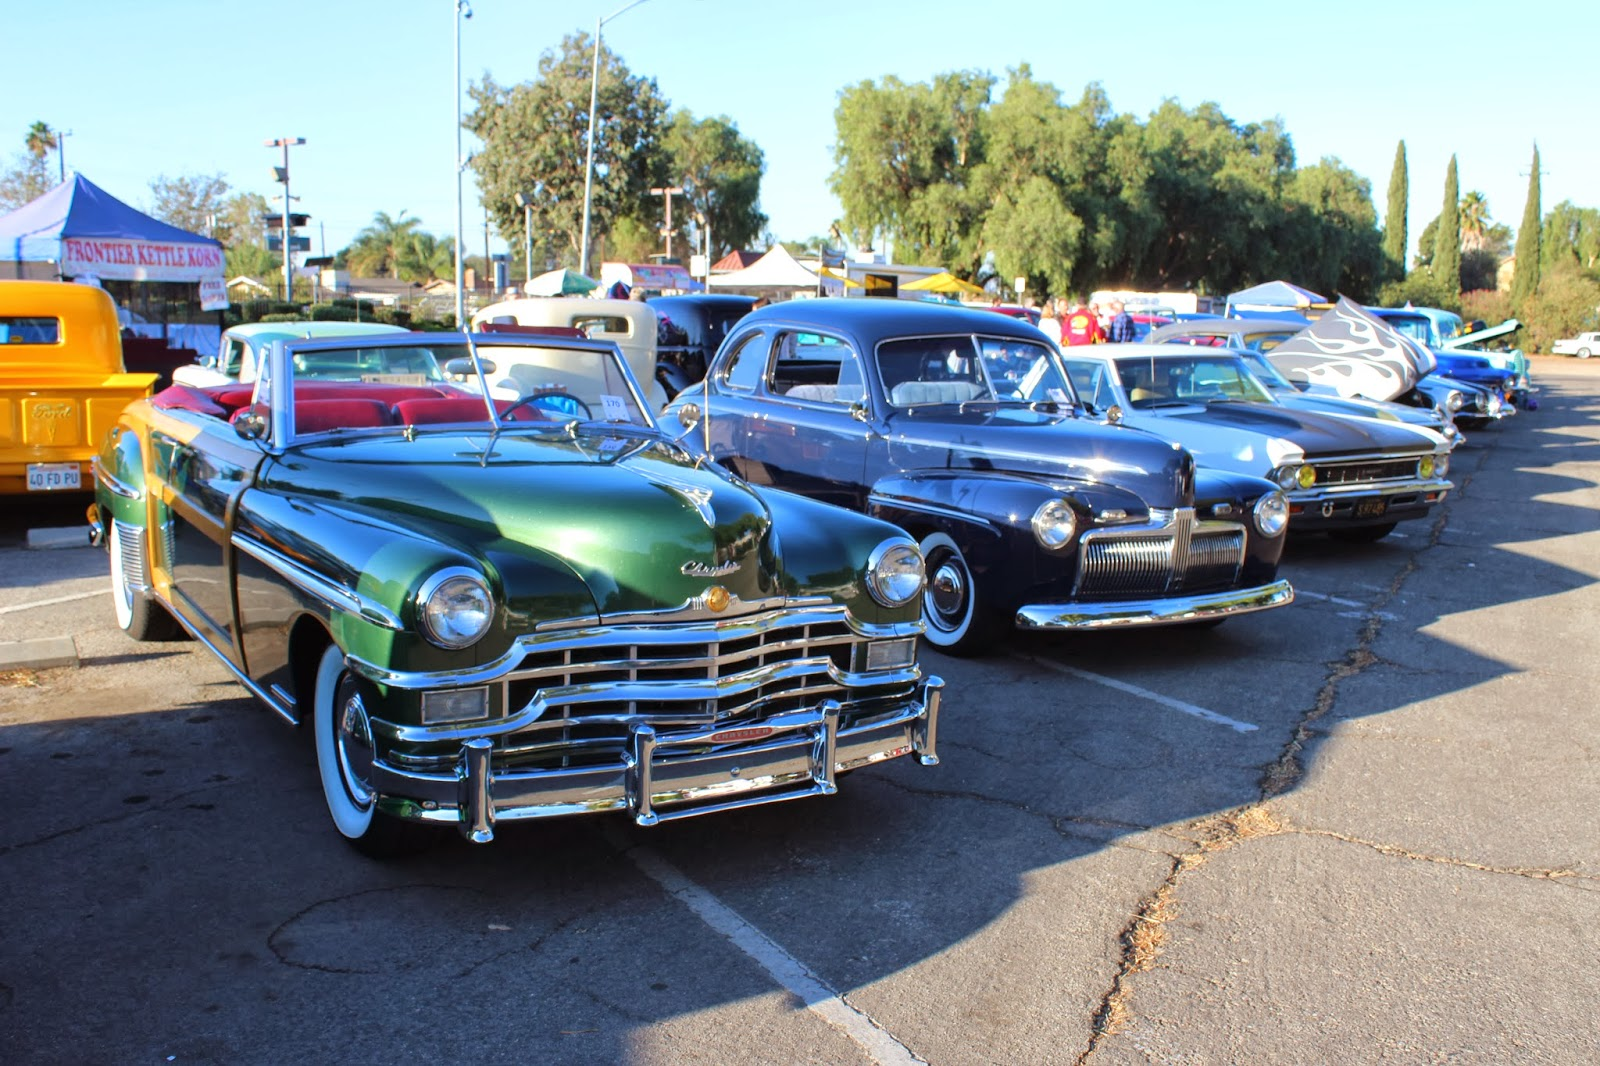 Covering Classic Cars Roamin Relics Car Show In Moorpark - Classic car show california